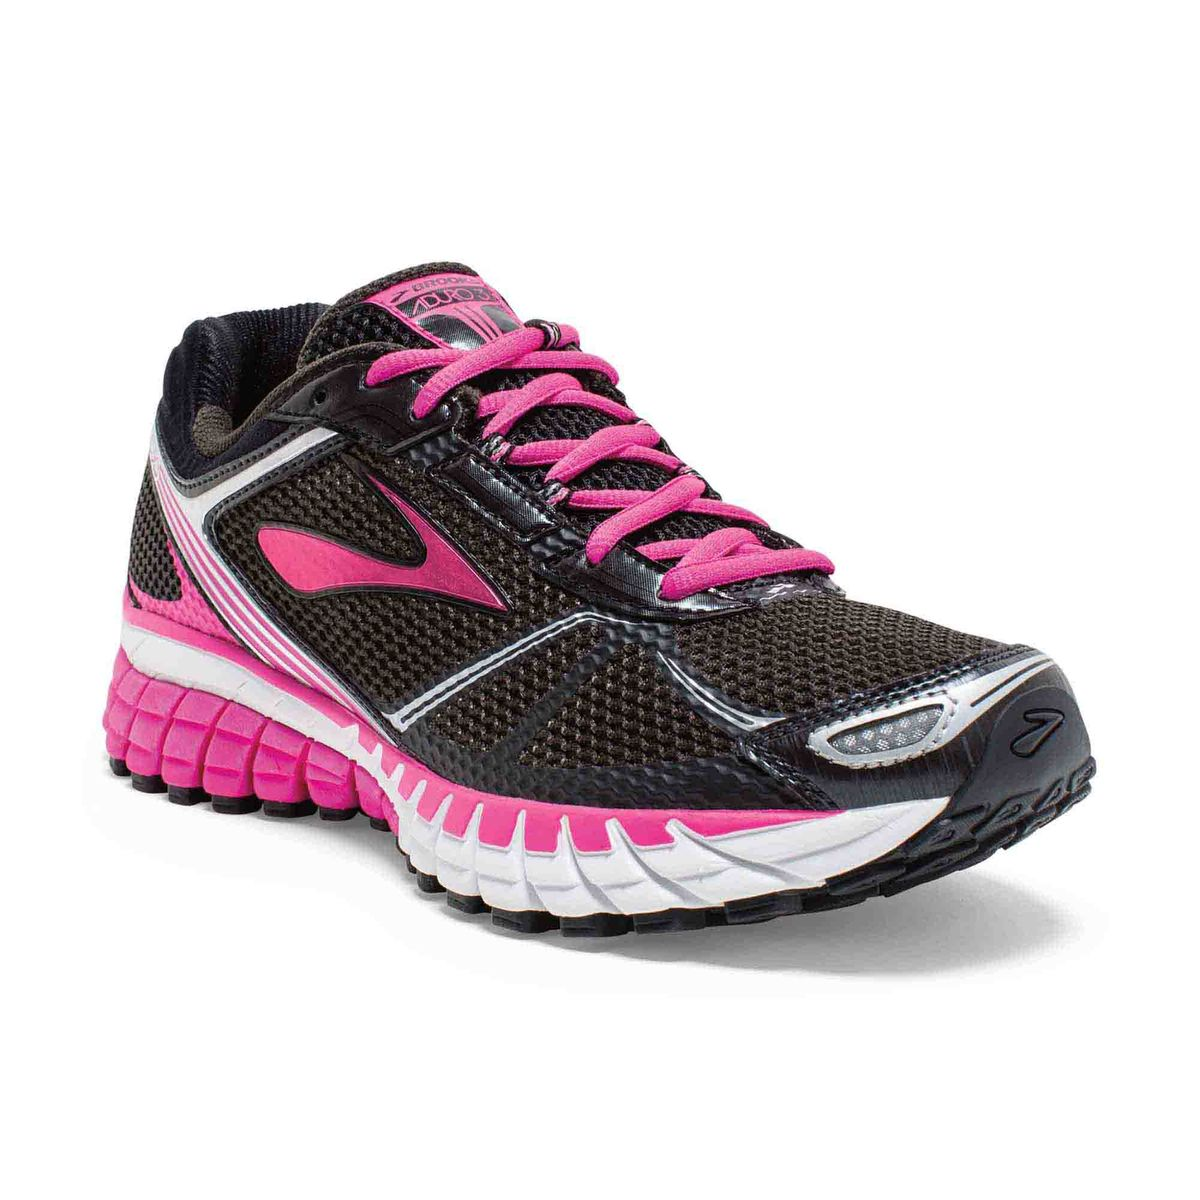 scarpa-running-brooks-aduro-3-women-018.jpg